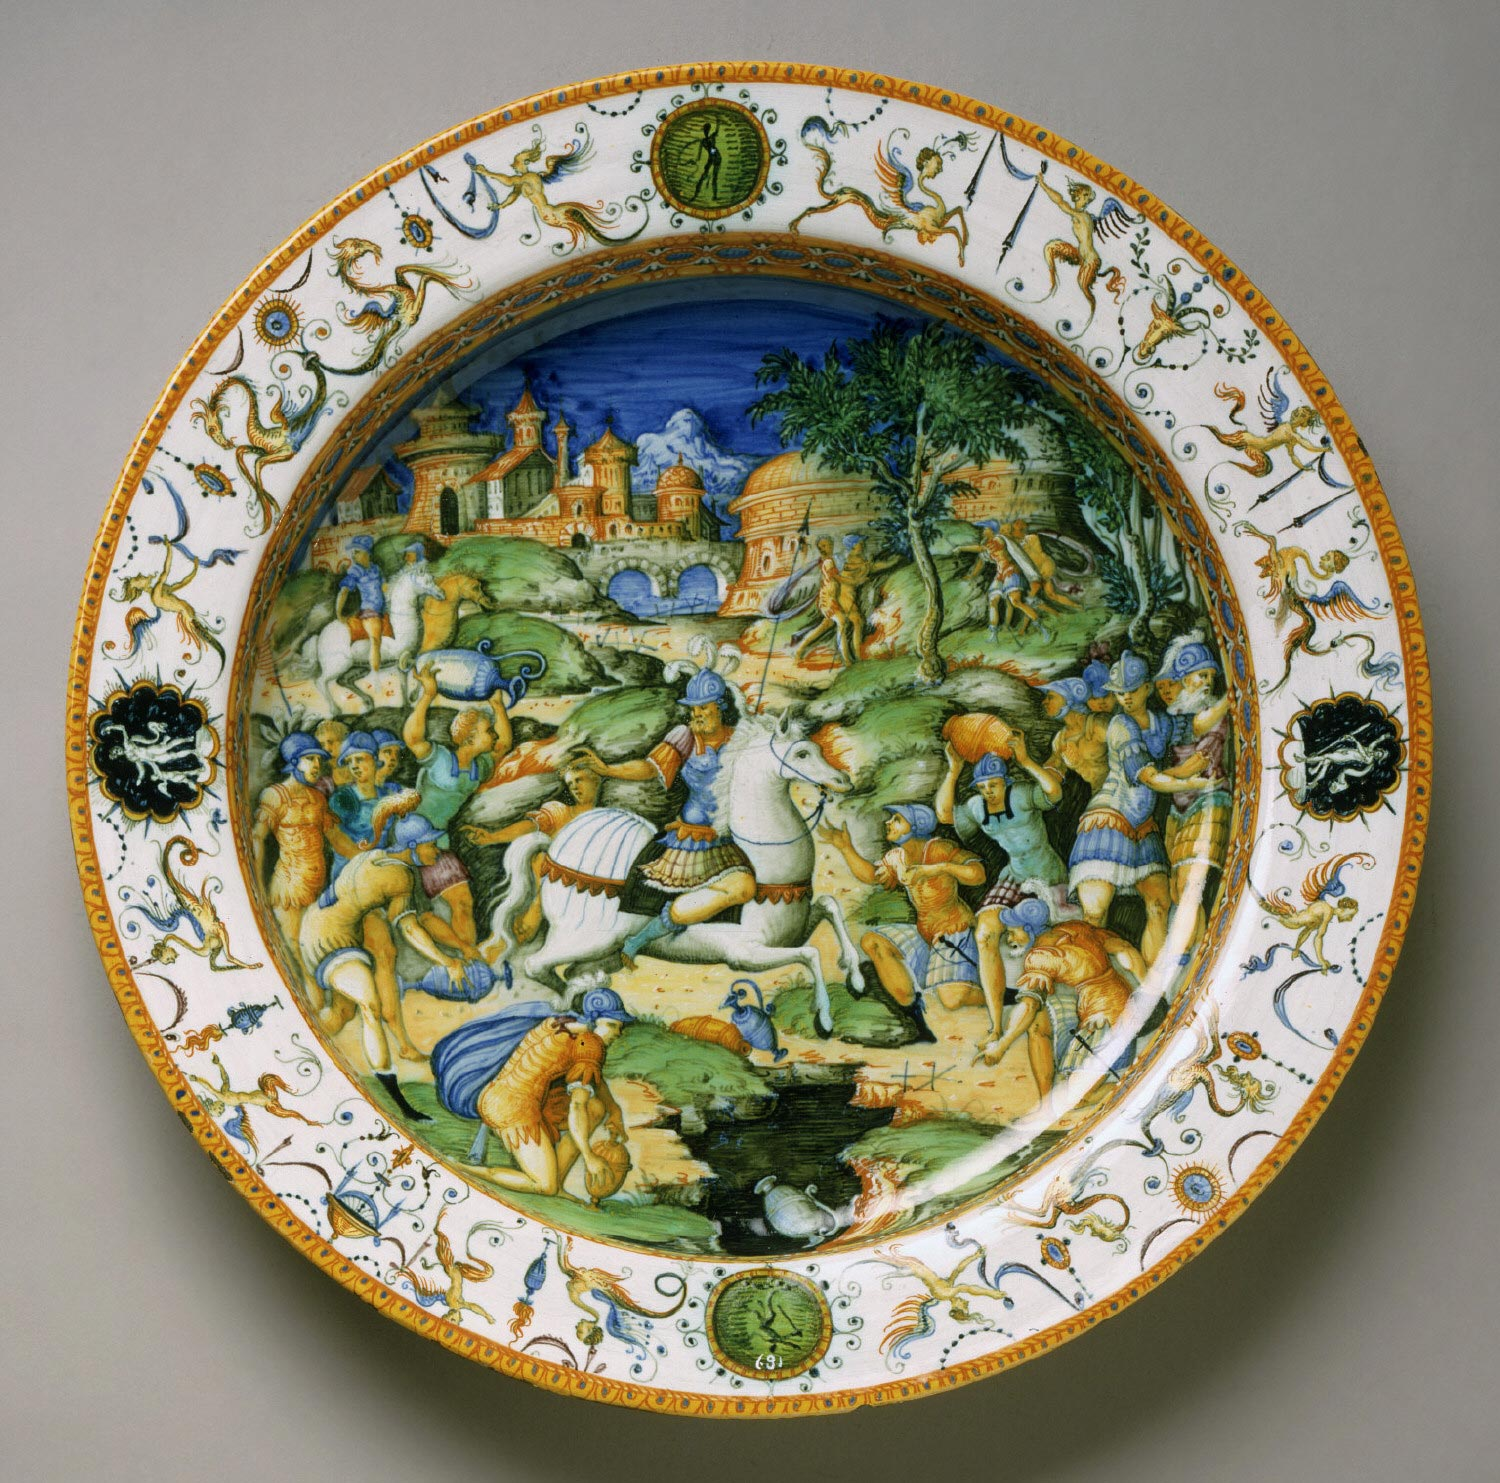 A maiolica plate showing the sacrifice of Marcus Curtius, cr. 1560-1570, workshop of Guido Durantino or of Orazio Fontana, Urbino